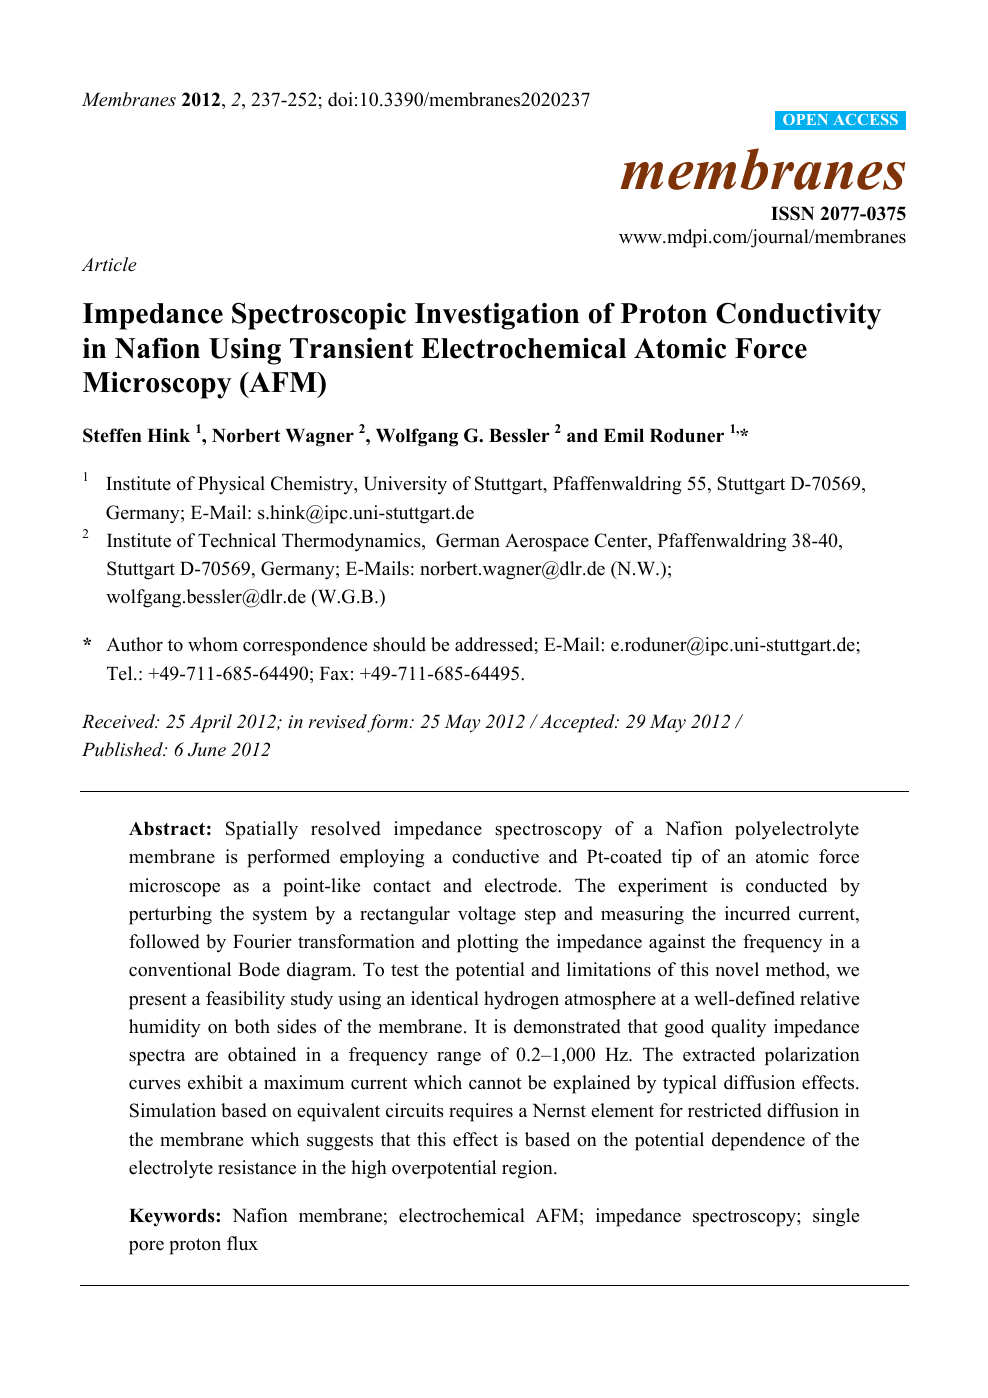 Impedance Spectroscopic Investigation of Proton Conductivity in